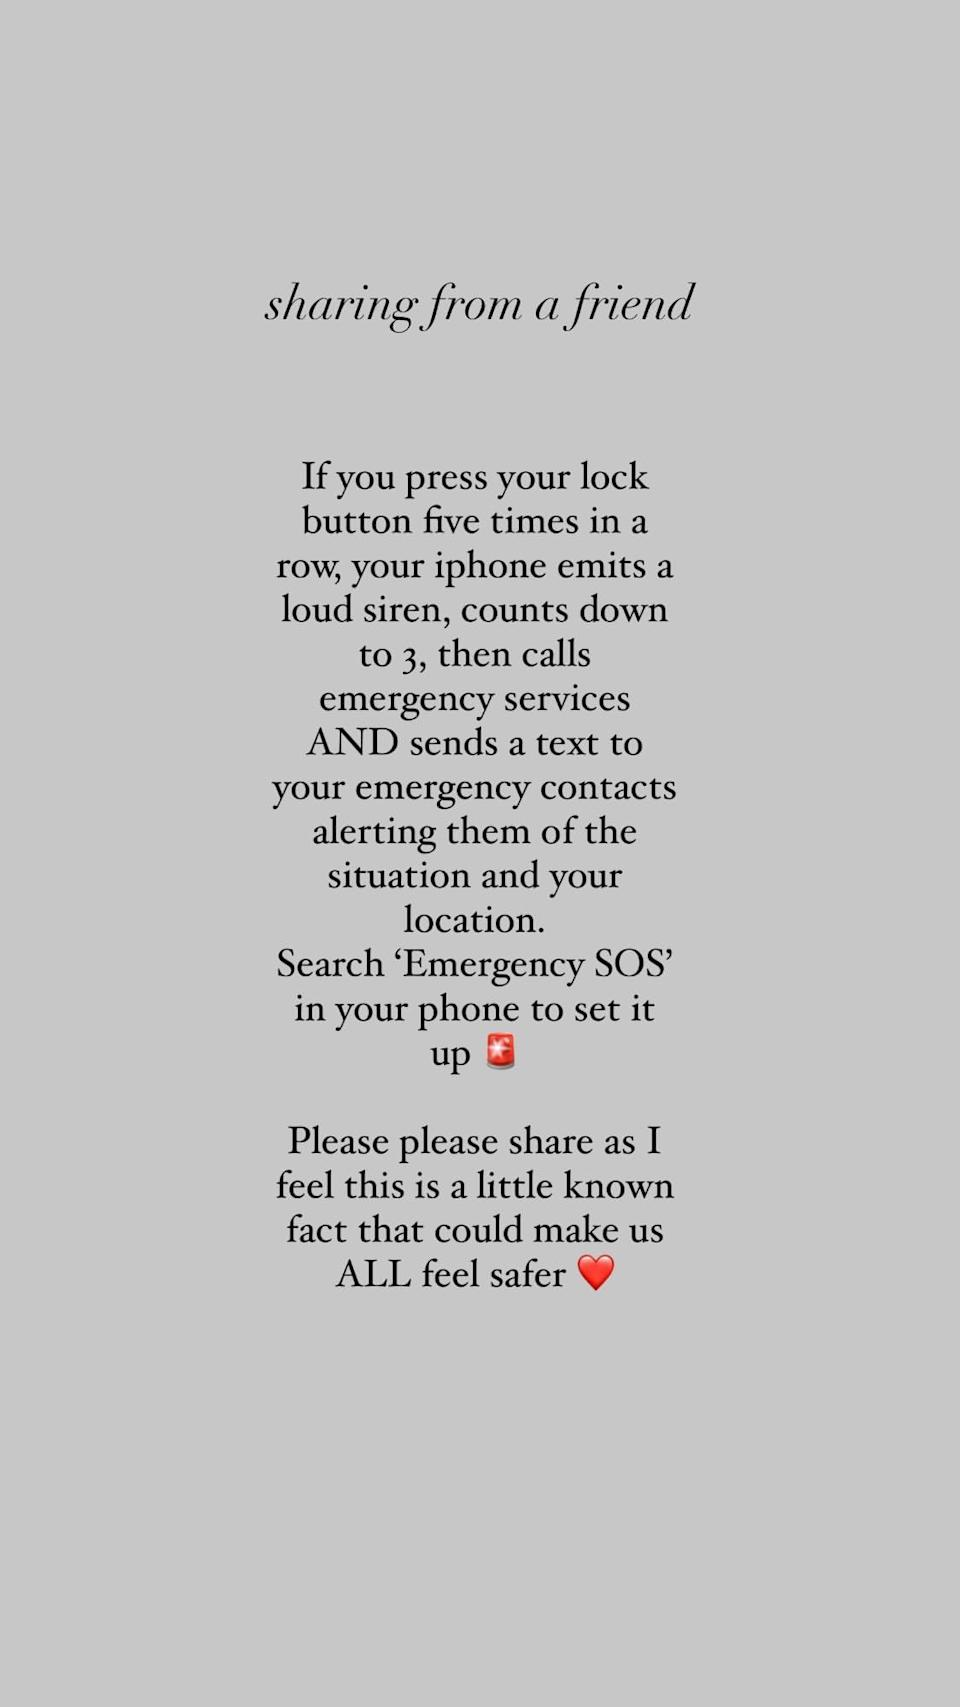 Instagram user The India Edit, shared an iPhone hack following Sarah's disappearance. Photo: Instagram/TheIndiaEdit